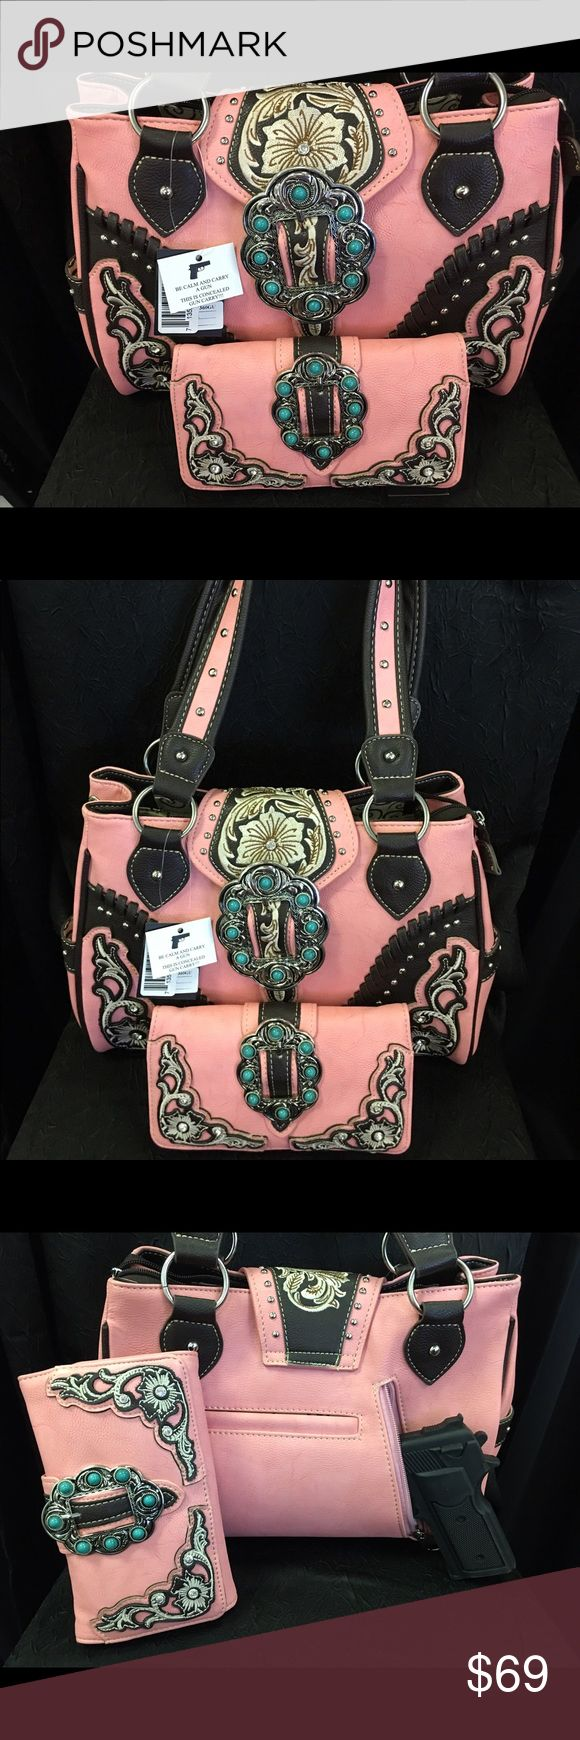 Montana West Pink Bling concealed carry handbag!!! Montana West concealed carry handbag with matching wallet!!!! Montana West Bags Shoulder Bags